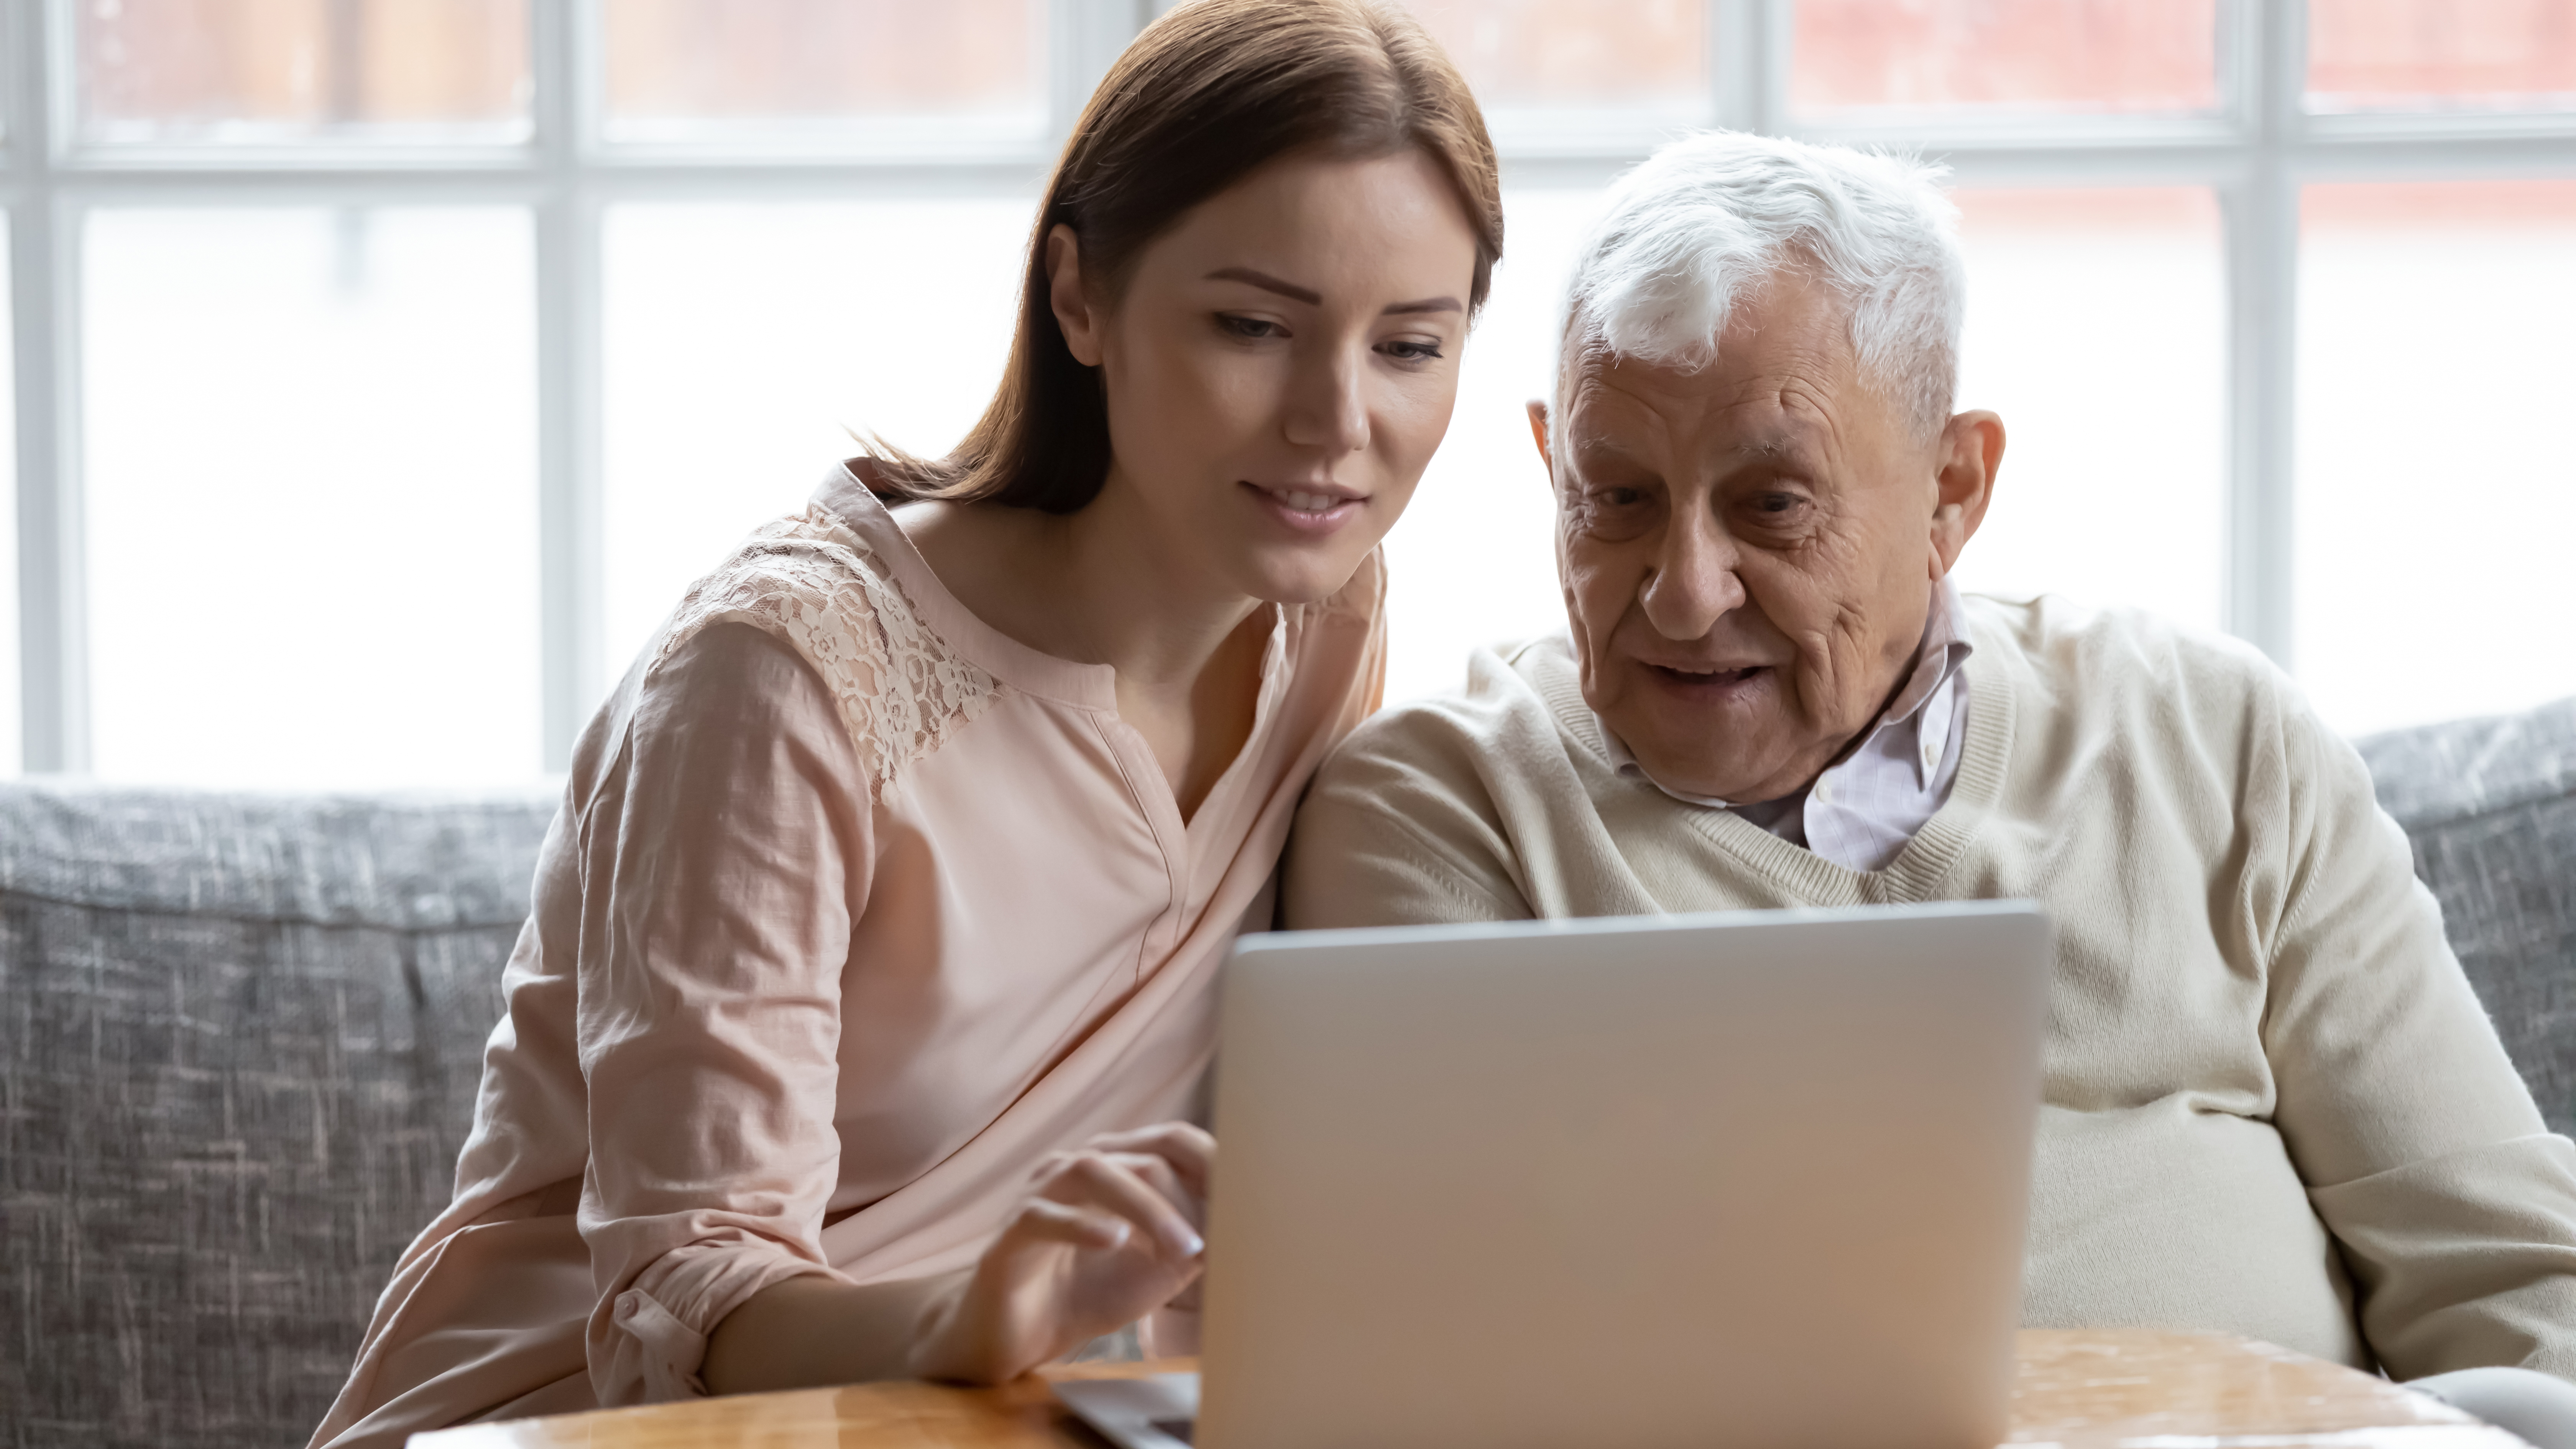 Woman helping an elderly man learn the computer